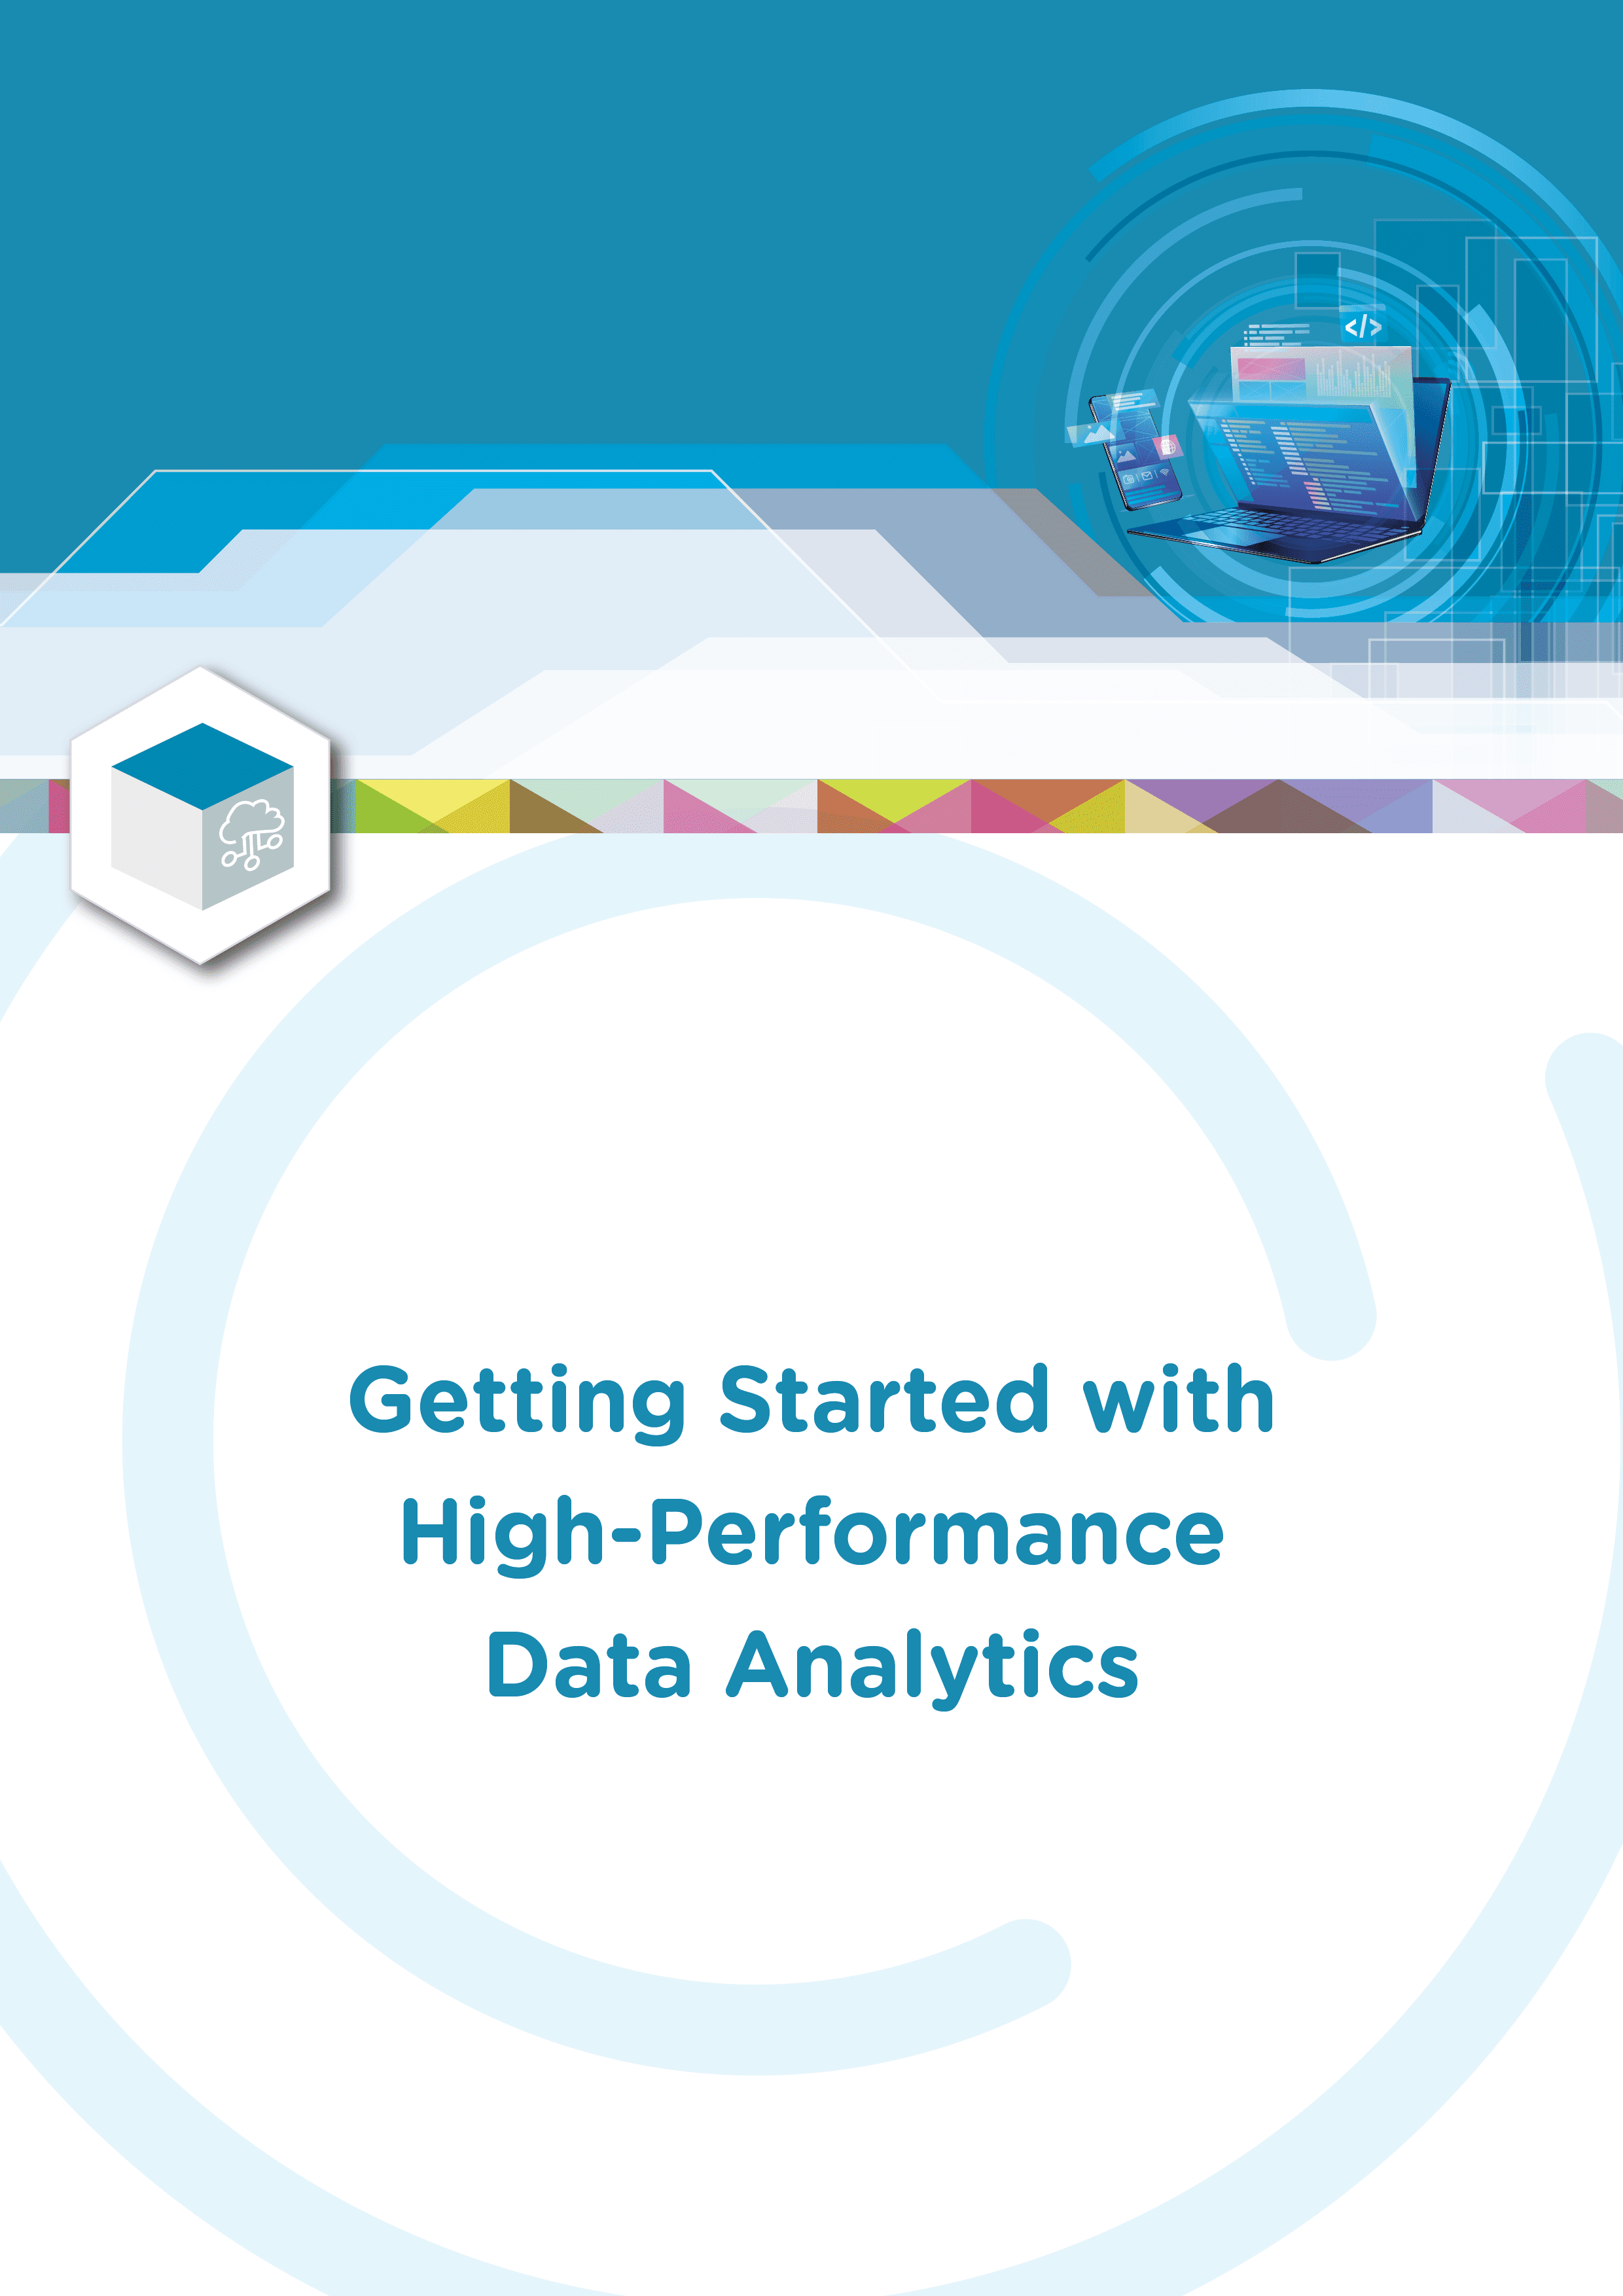 Getting Started with High-Performance Data Analytics